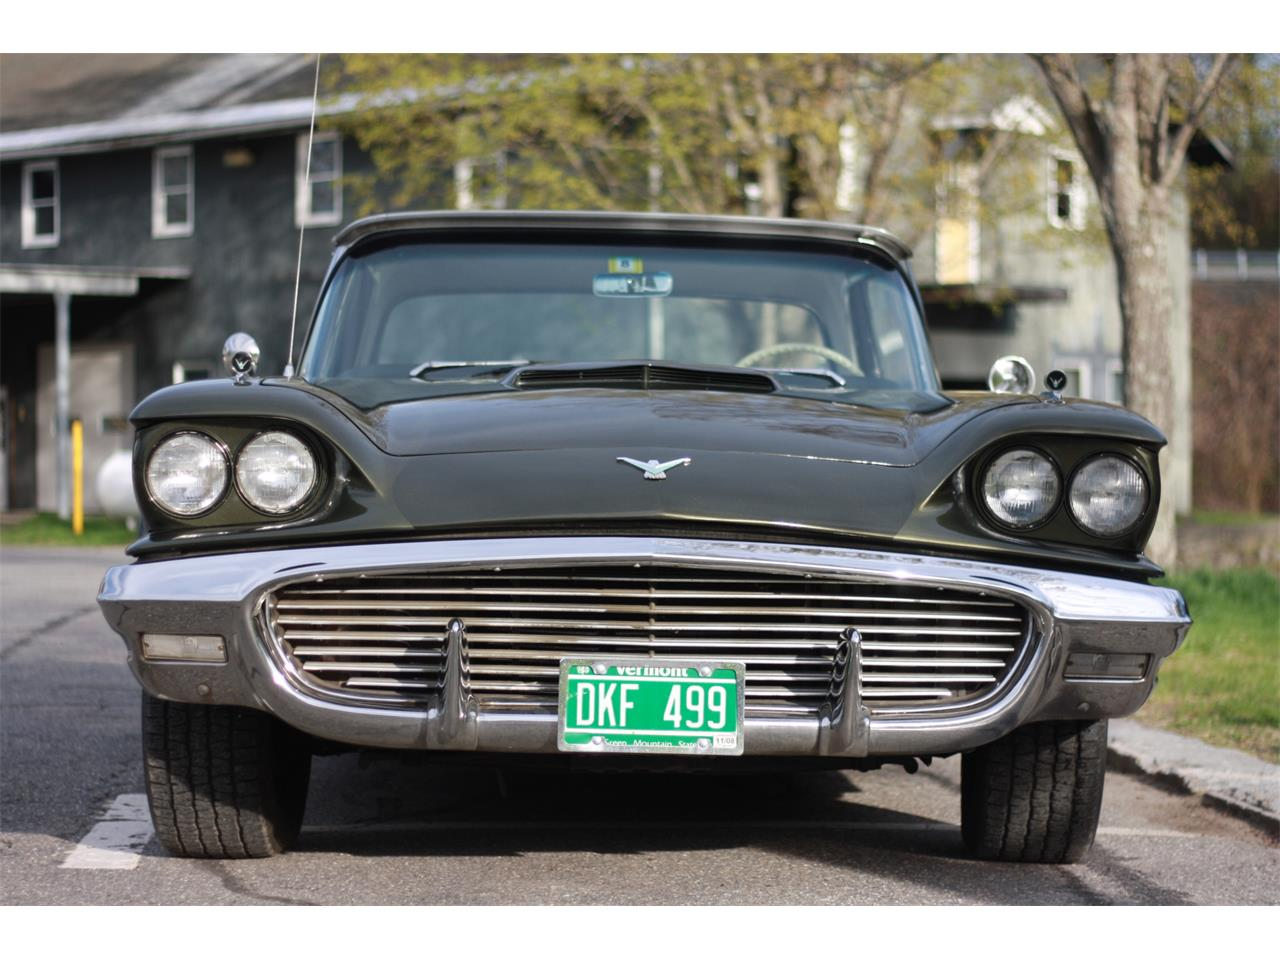 Large Picture of '59 Ford Thunderbird located in Vermont Auction Vehicle Offered by Bring A Trailer - QI4M